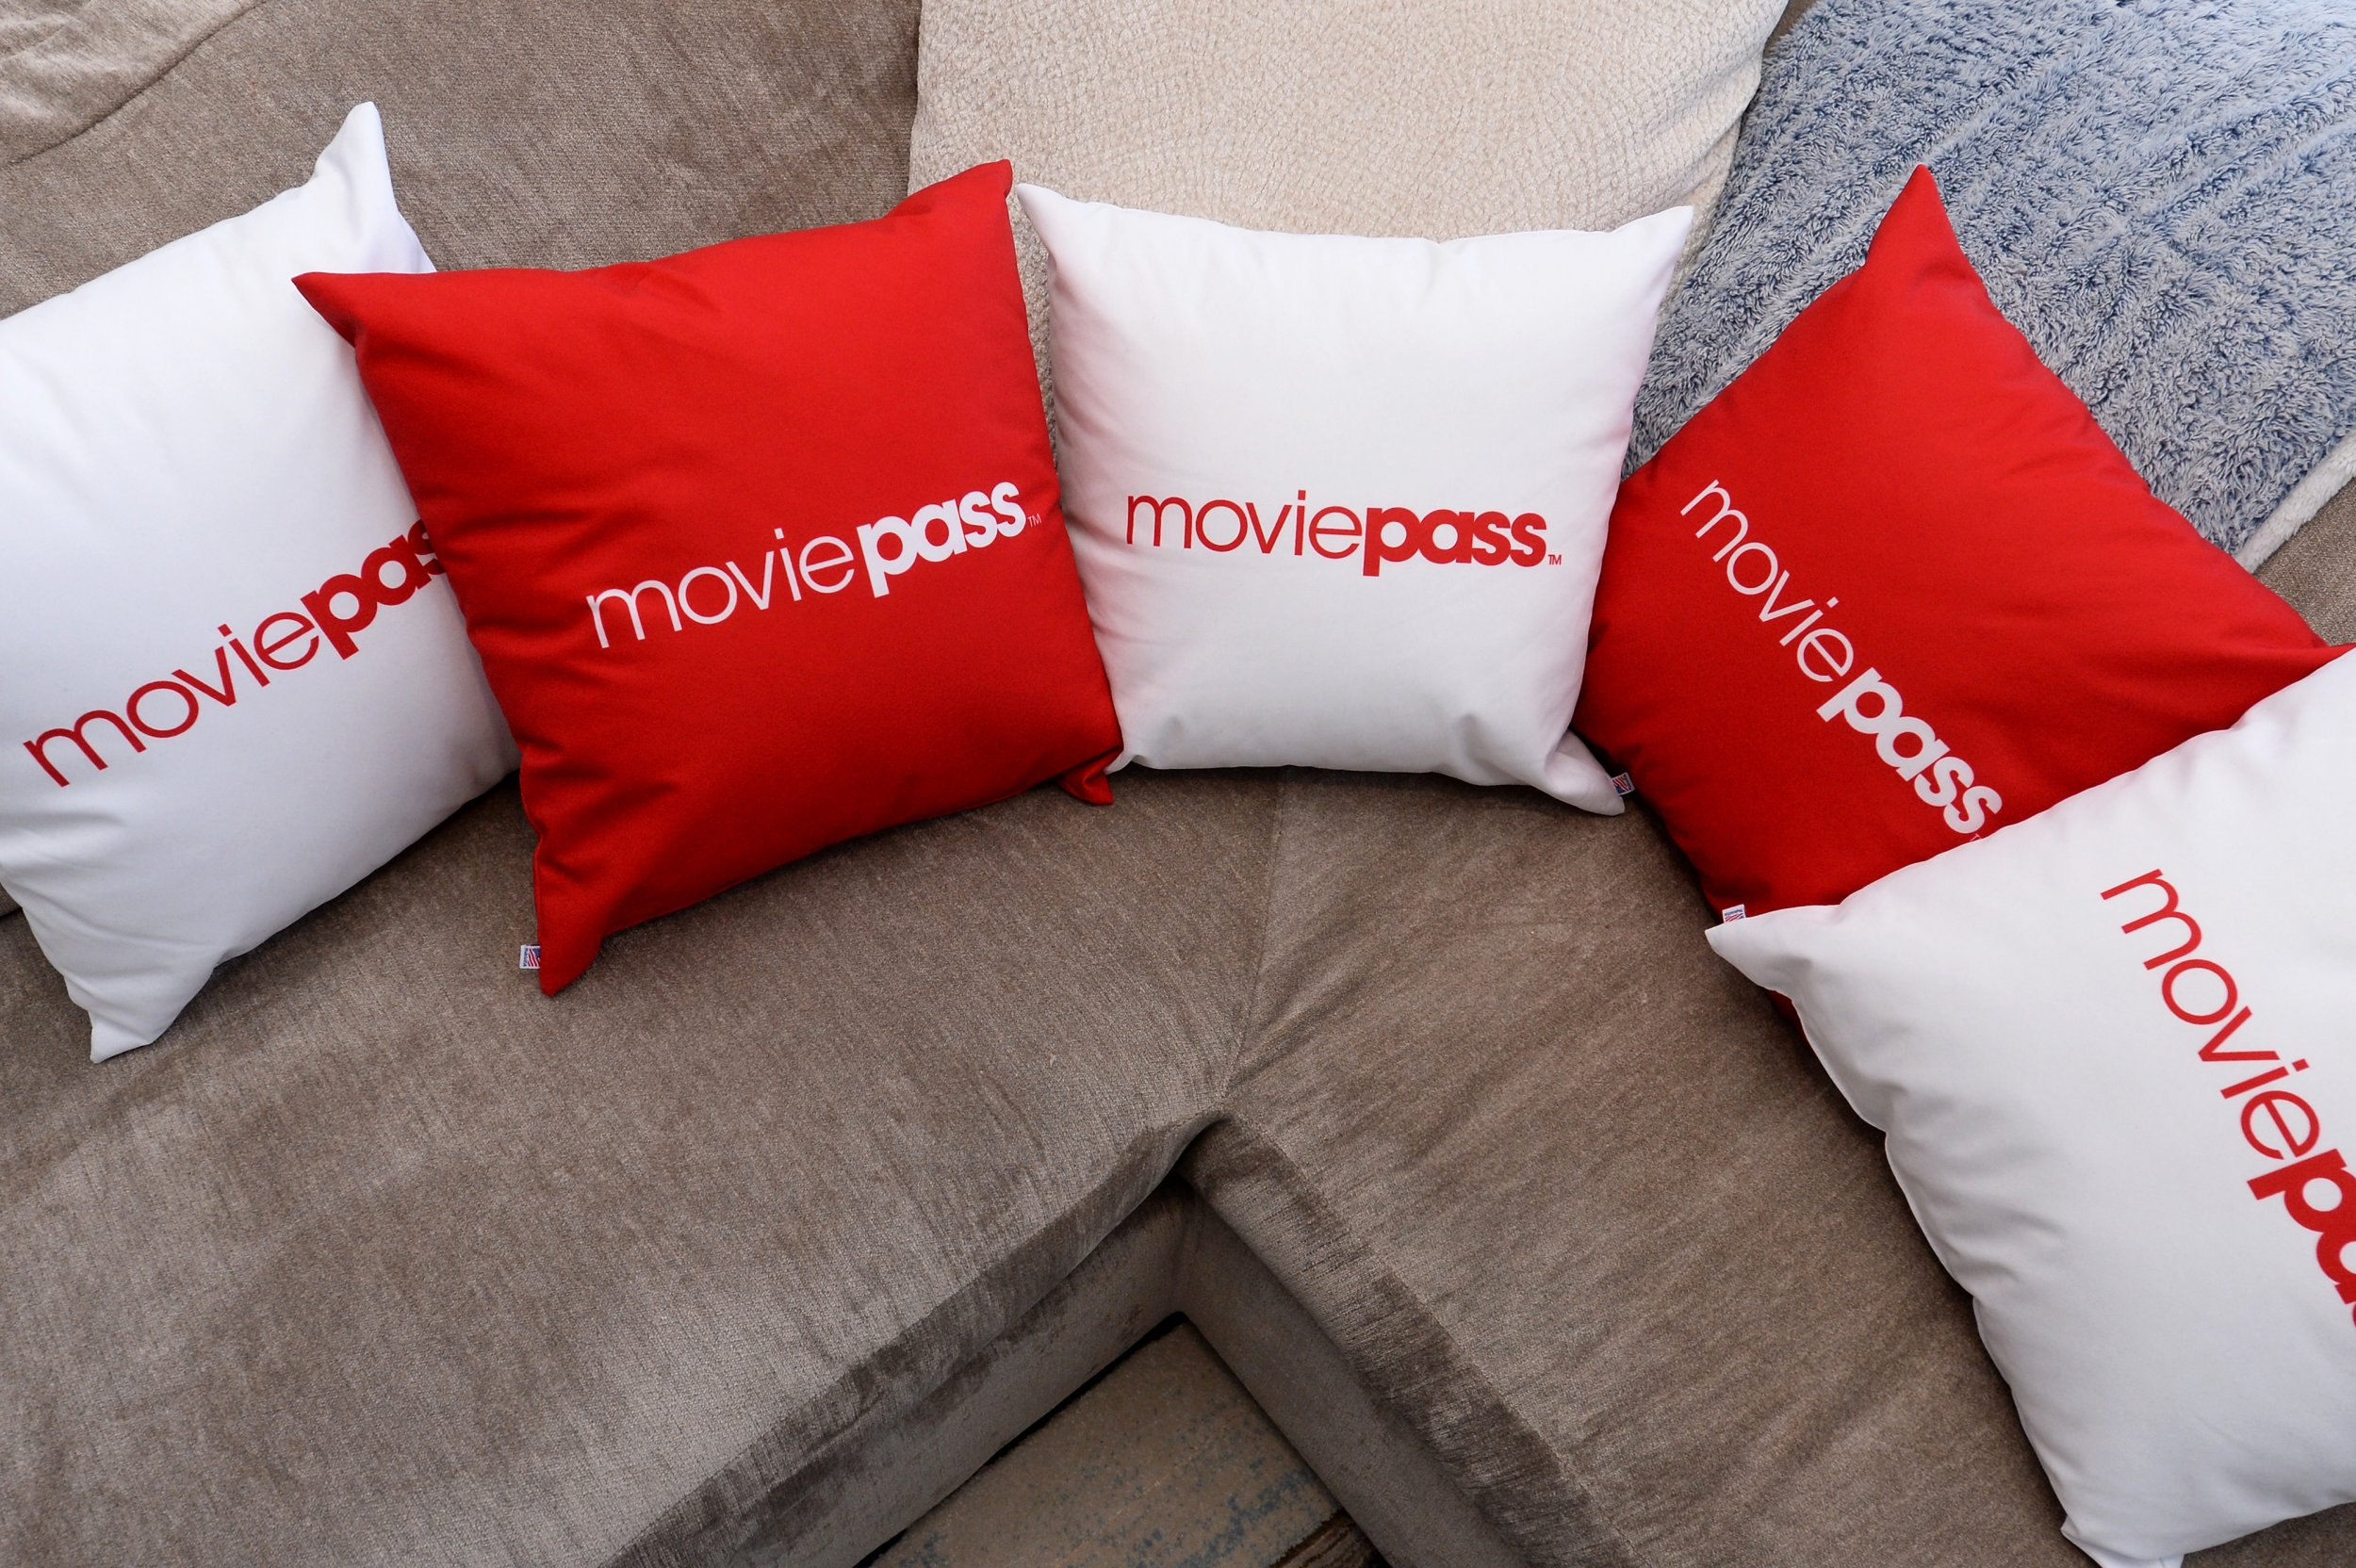 MoviePass CEO admits app tracks users' location before and after movie